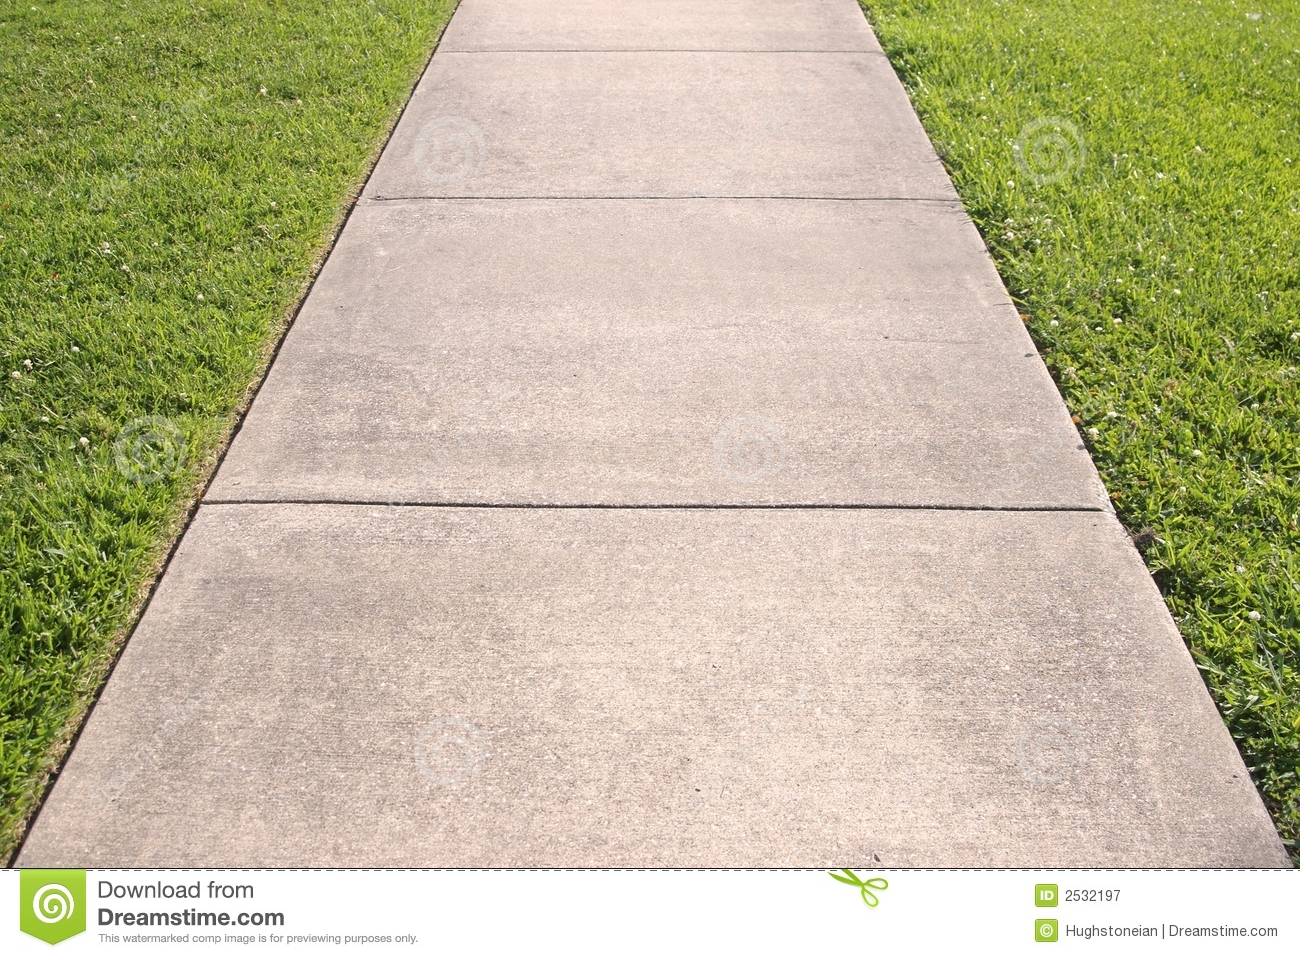 Sidewalk pictures clipart image freeuse download Sidewalk clipart 8 » Clipart Station image freeuse download